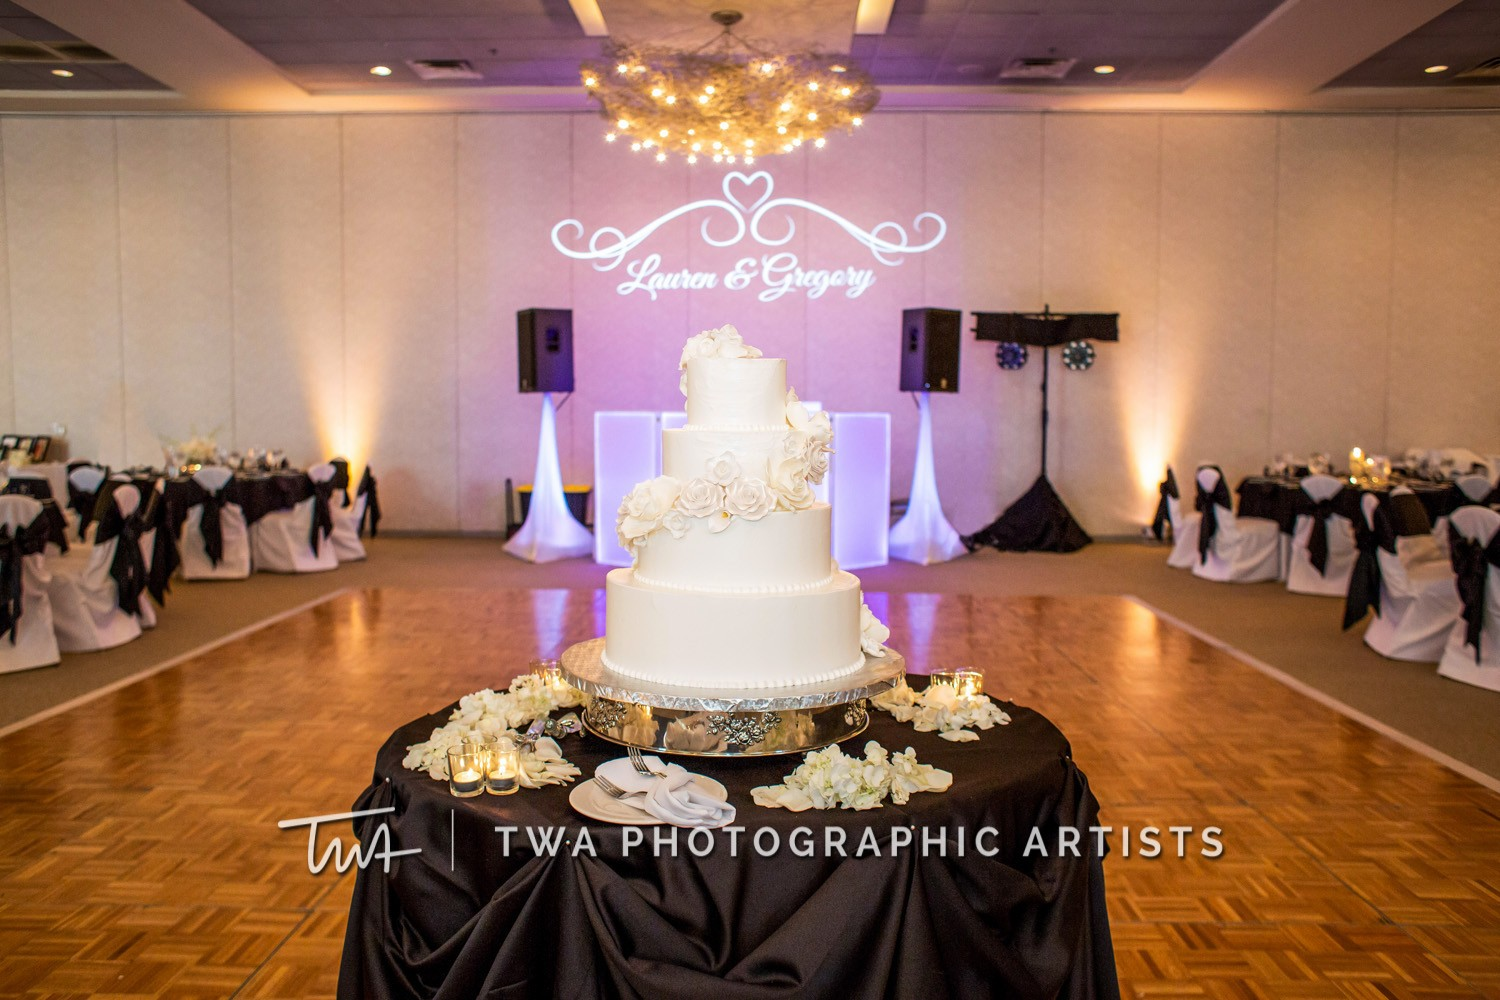 Chicago-Wedding-Photographer-TWA-Photographic-Artists-Belvedere-Banquets_Straka_Zinn_MJ_DH-0379-Edit